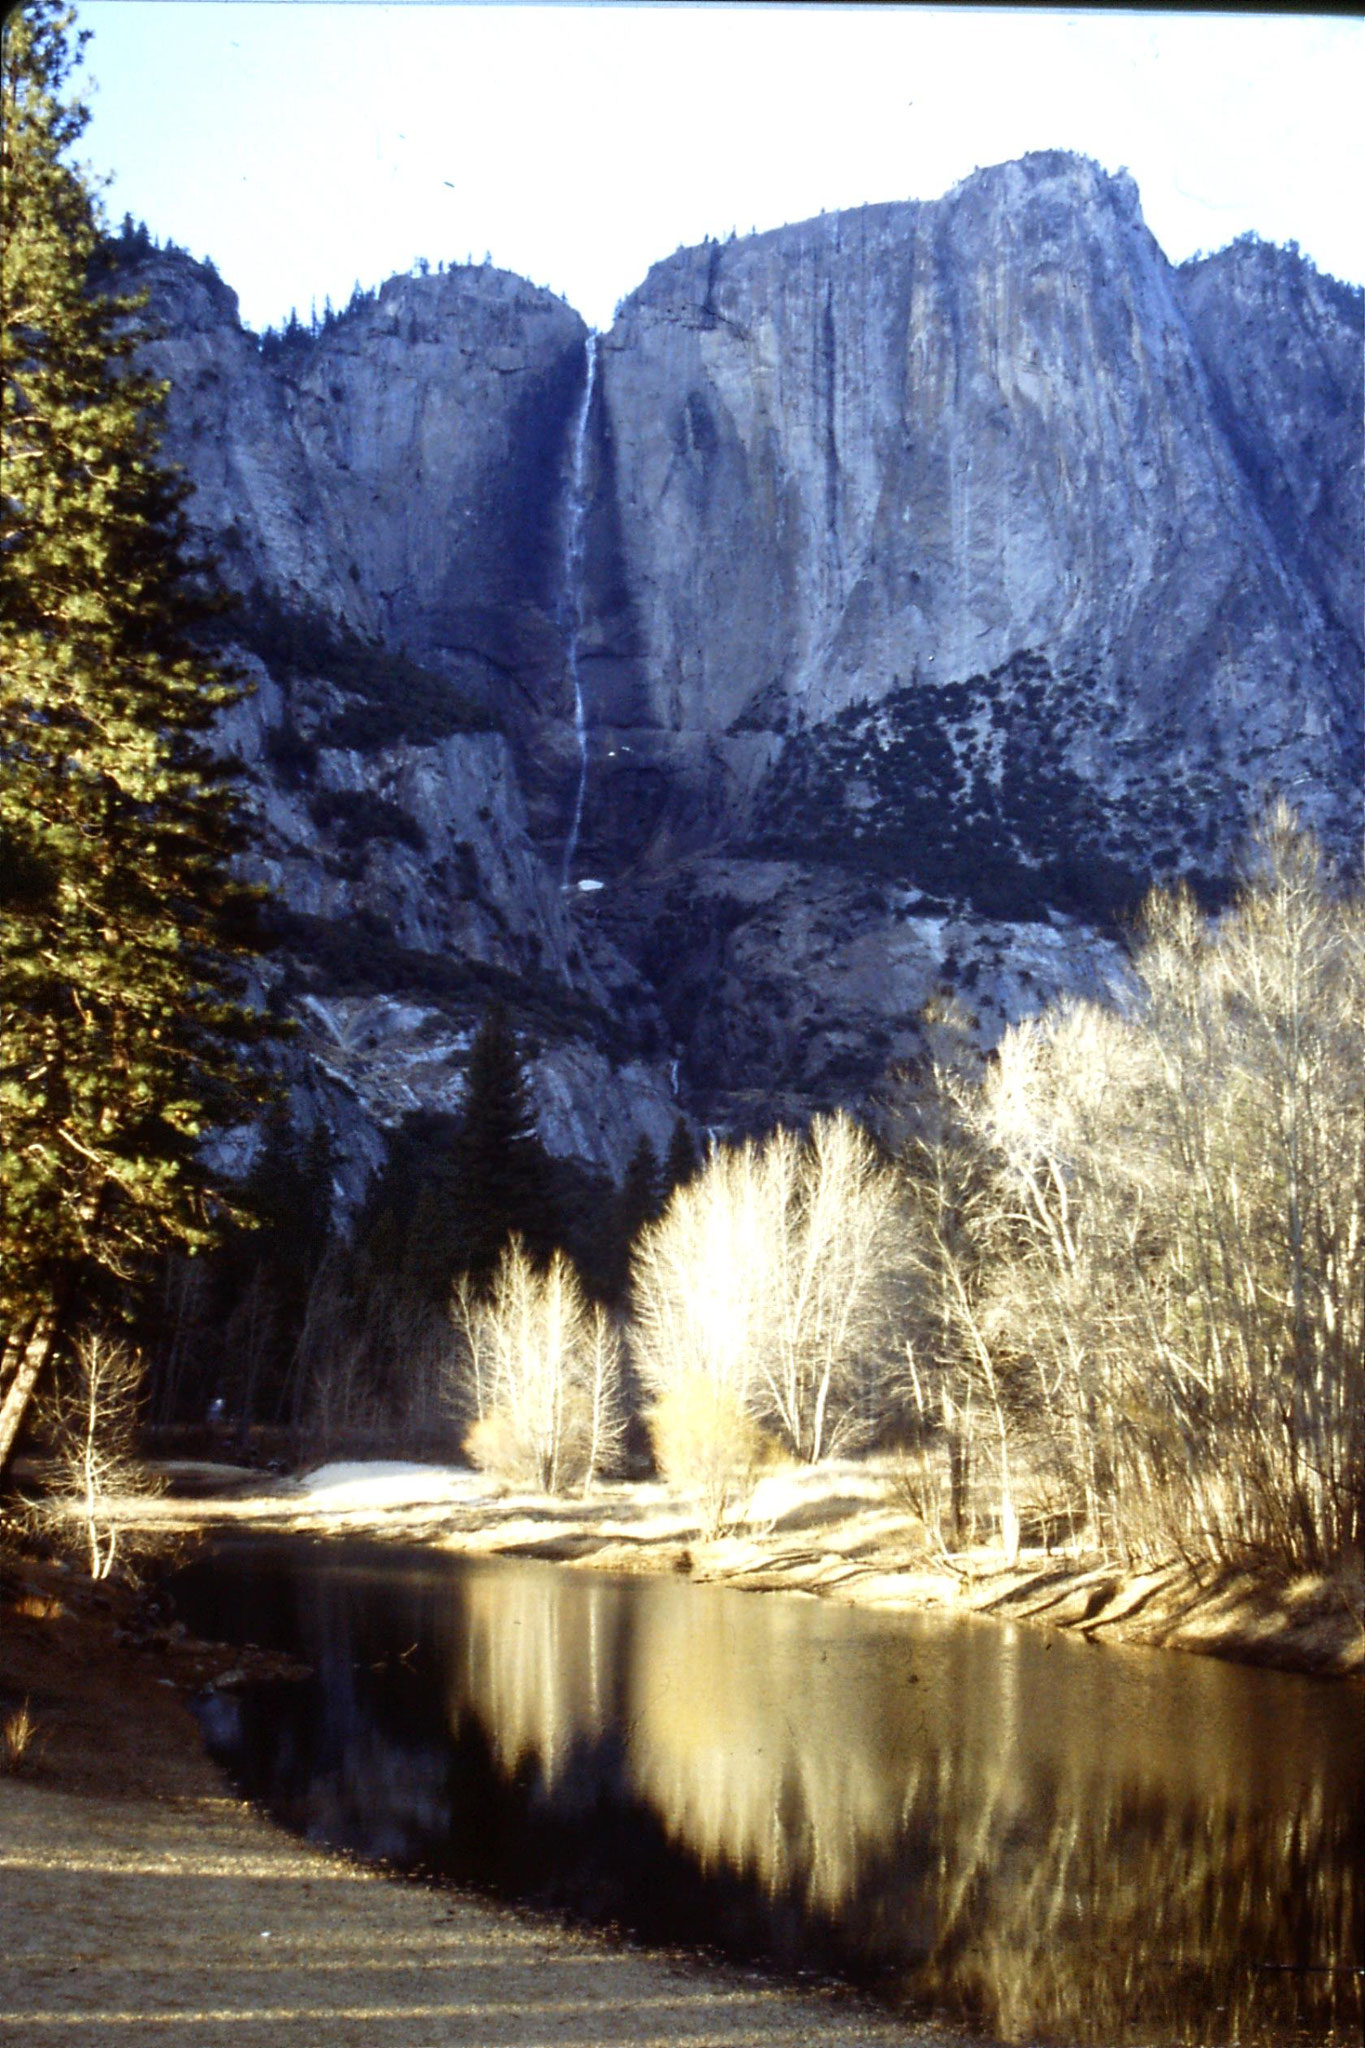 16/2/1991: 24: Yosemite valley